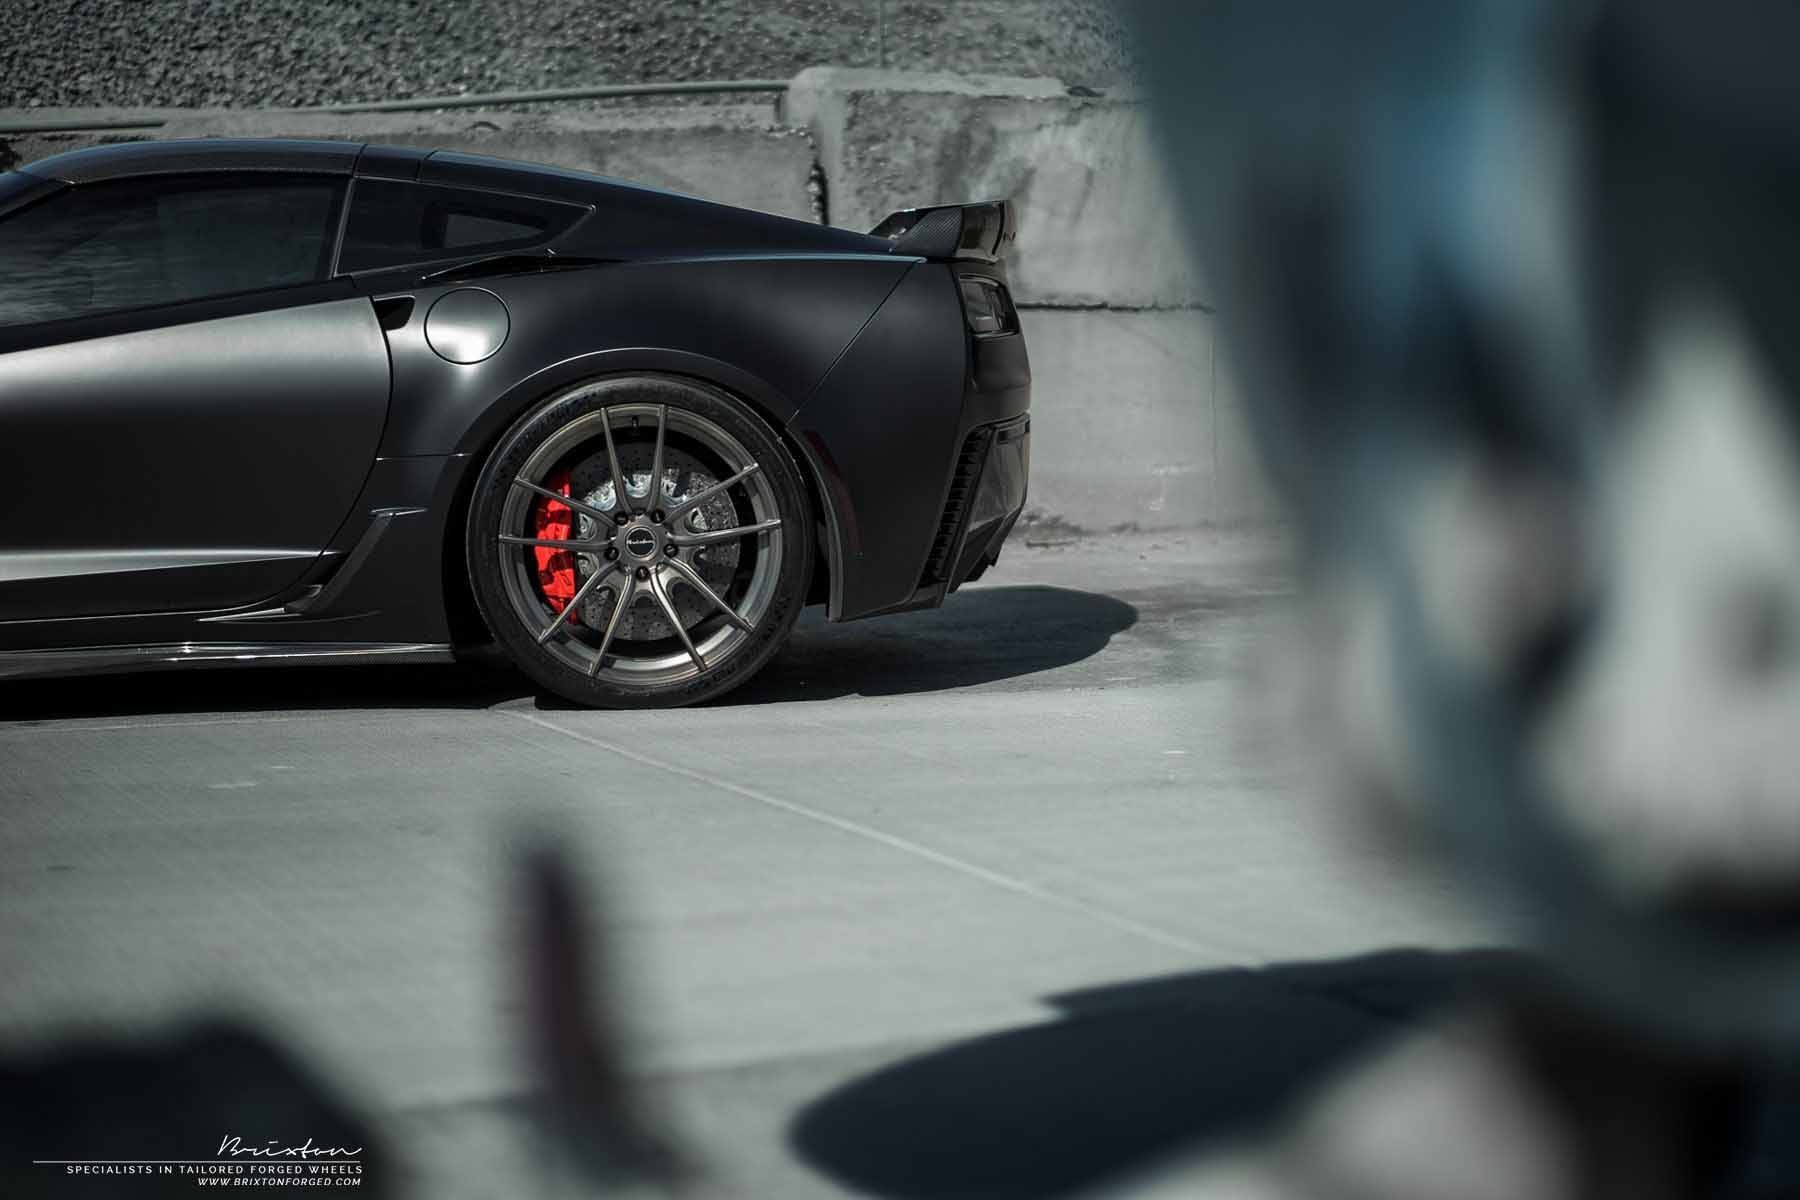 images-products-1-2245-232974533-black-corvette-c7-z06-forged-wheels-brixton-forged-m53-ultrasport-1-piece-brushed-smoke-black-ma.jpg